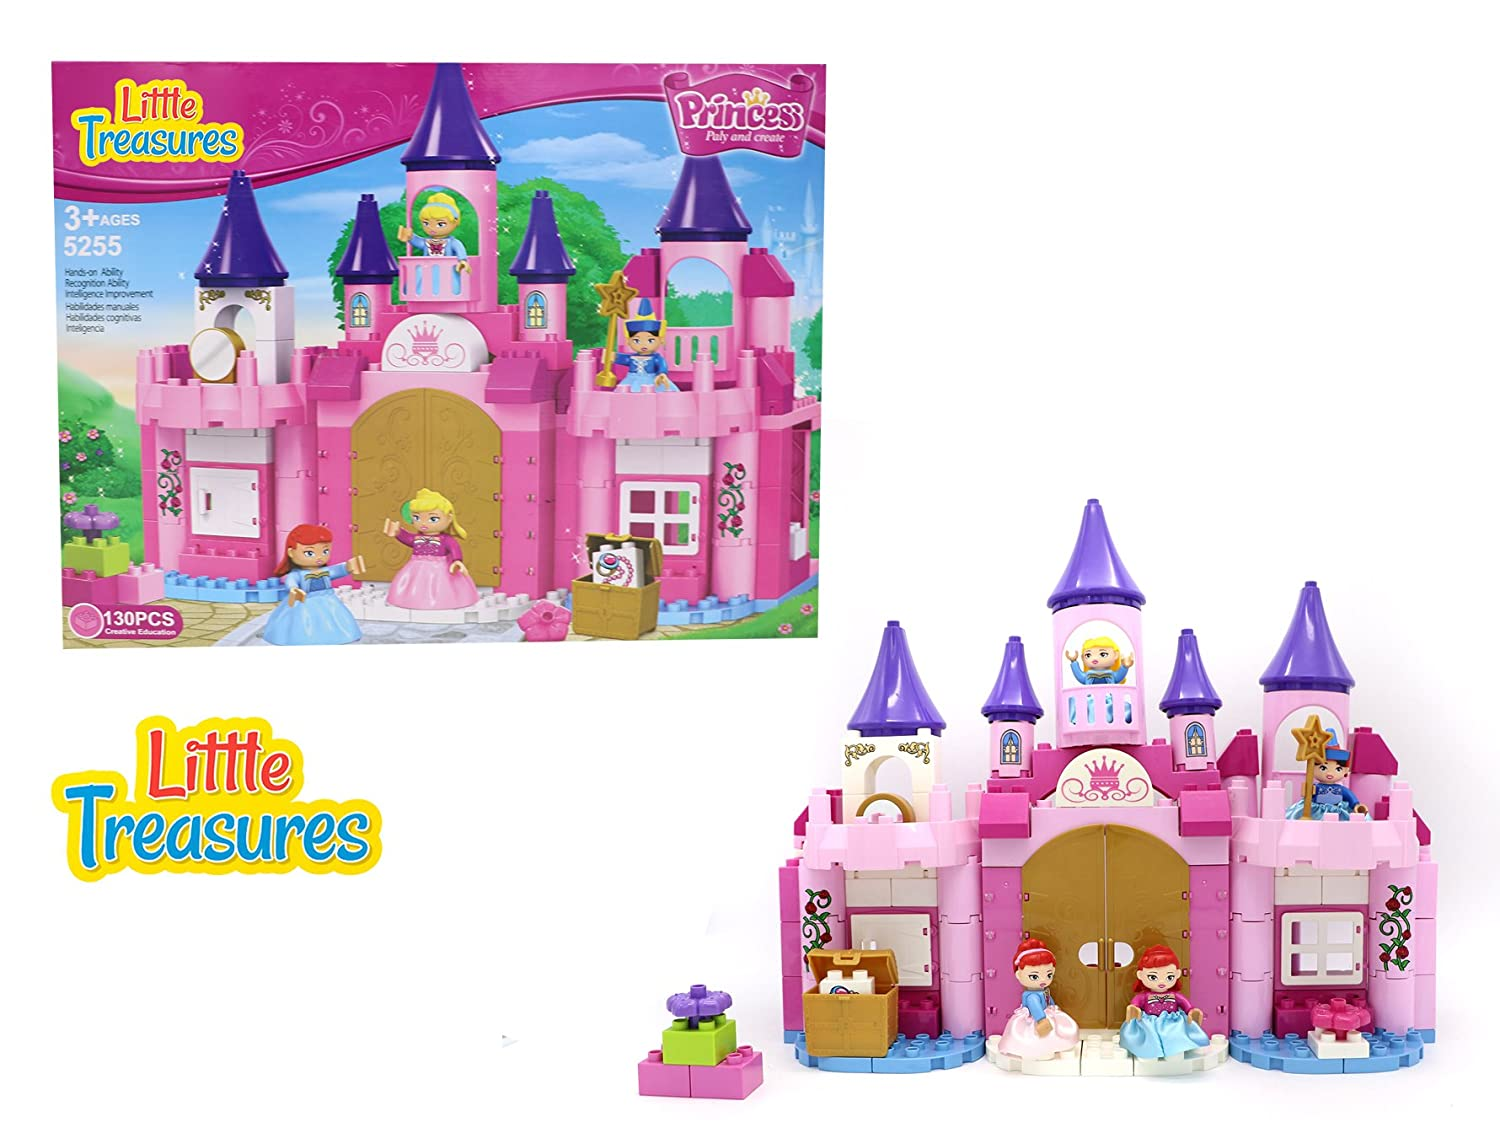 Treasure Chest and Toy Flowers Little Treasures Princess Fantasy Castle Building Bricks Set for Girls with 130 Pc Including Princesses